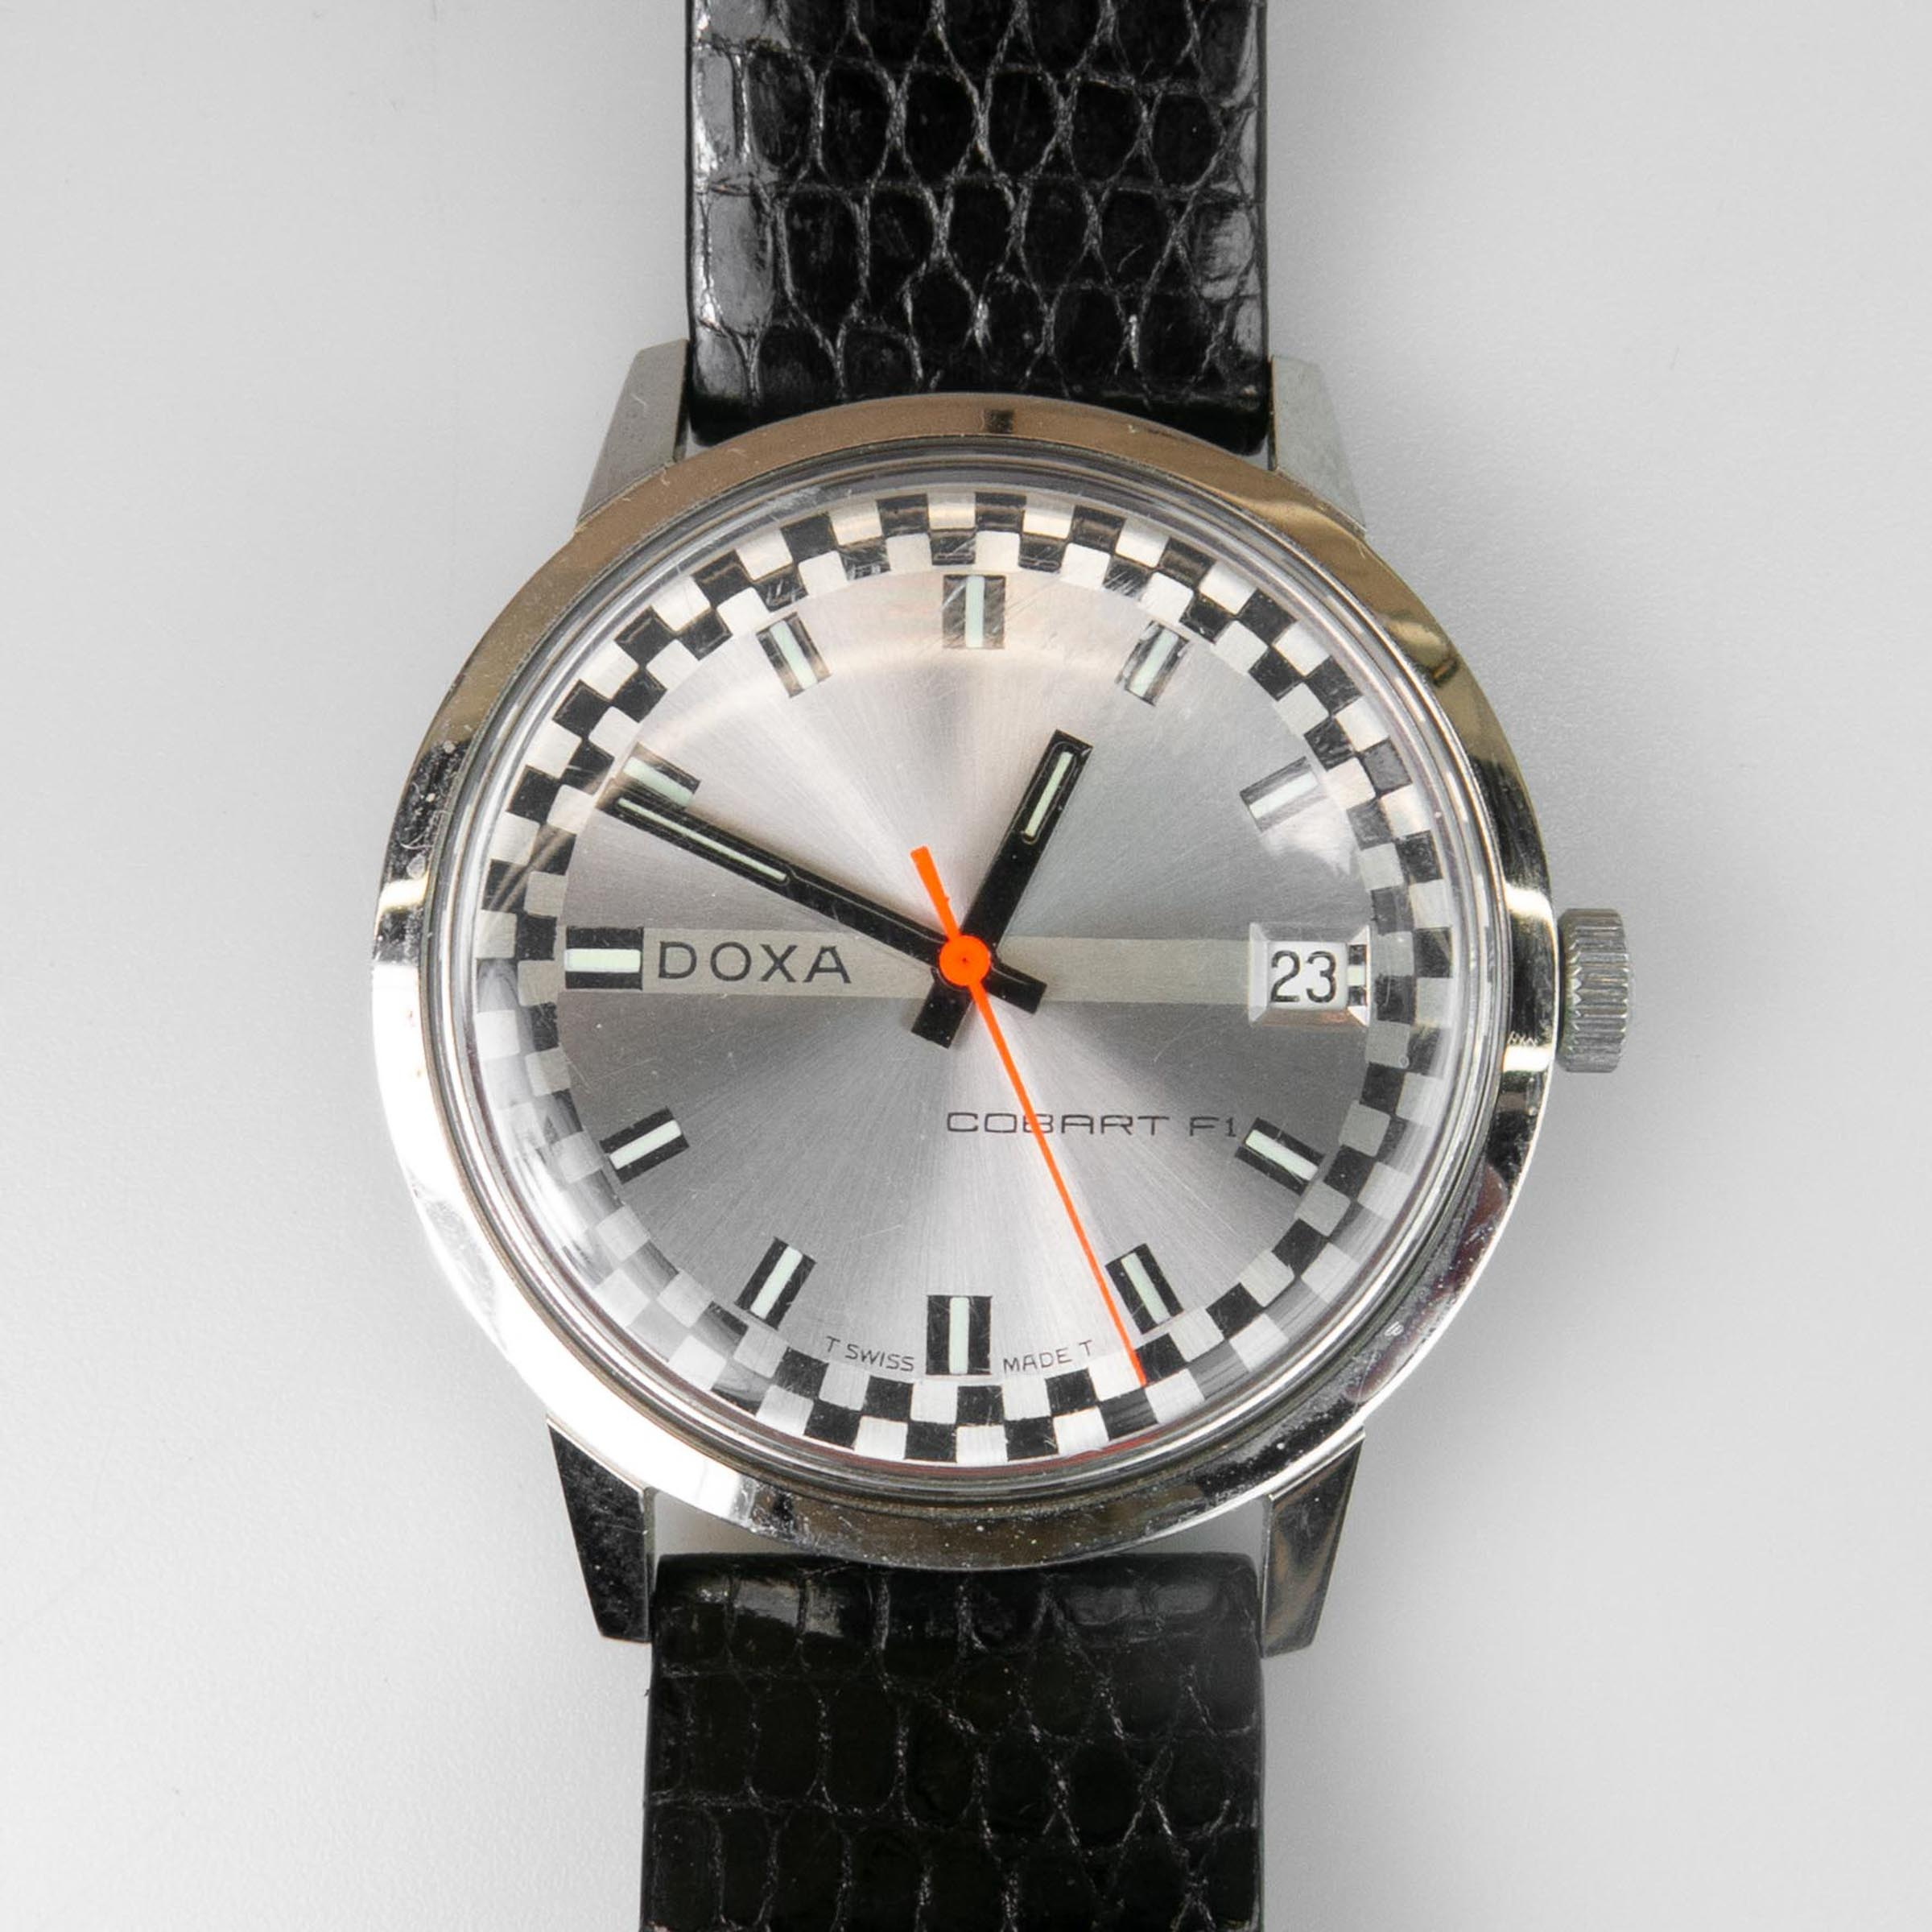 Doxa F1 Cobart Wristwatch, With Date